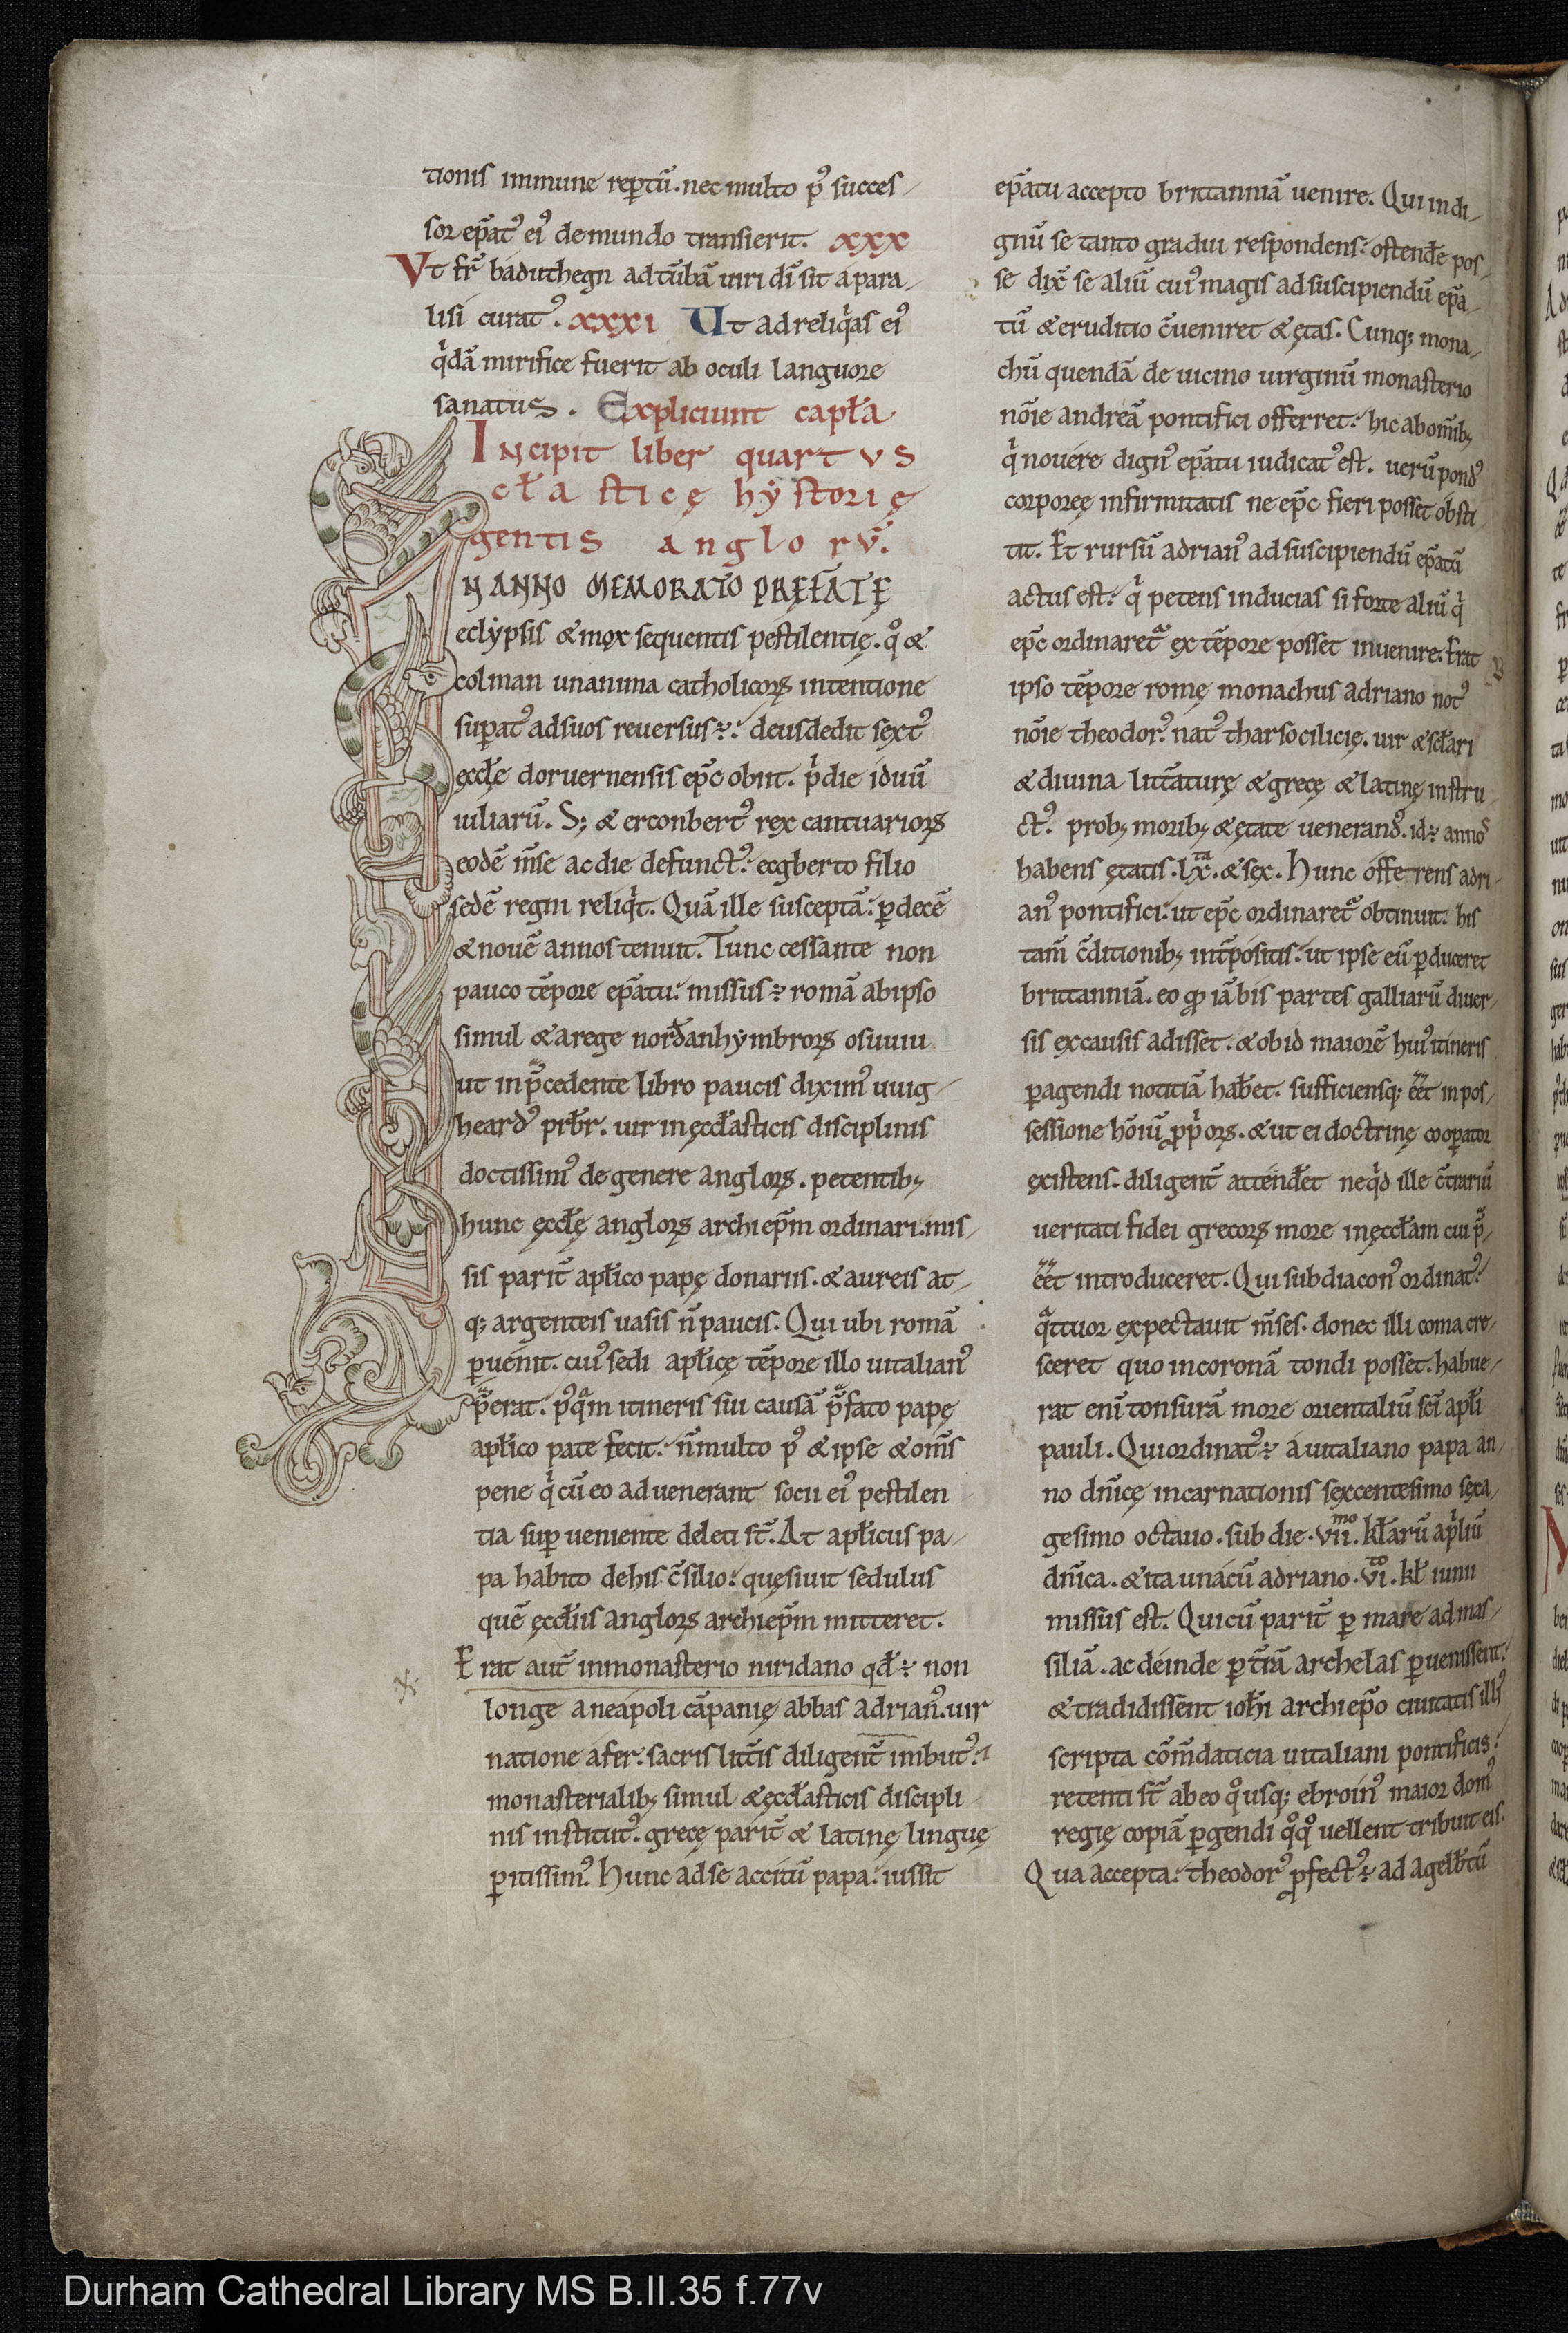 Durham Cathedral Library MS. B.II.35 f.77v, full page